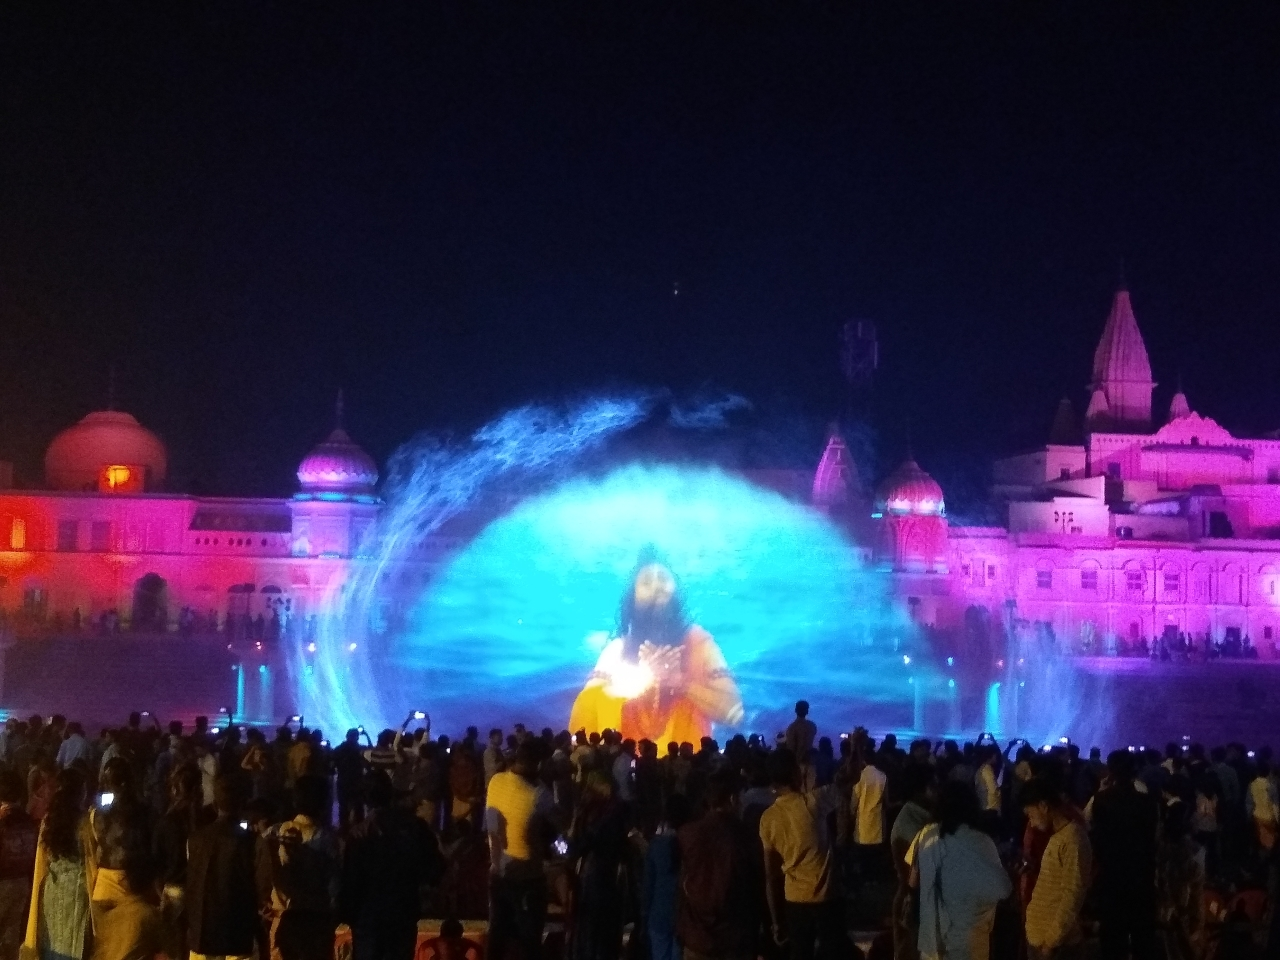 The laser and light show on water fountain. One of the scenes from digital Ramayan. Hundreds of people are expected to watch this 45-minute show today.